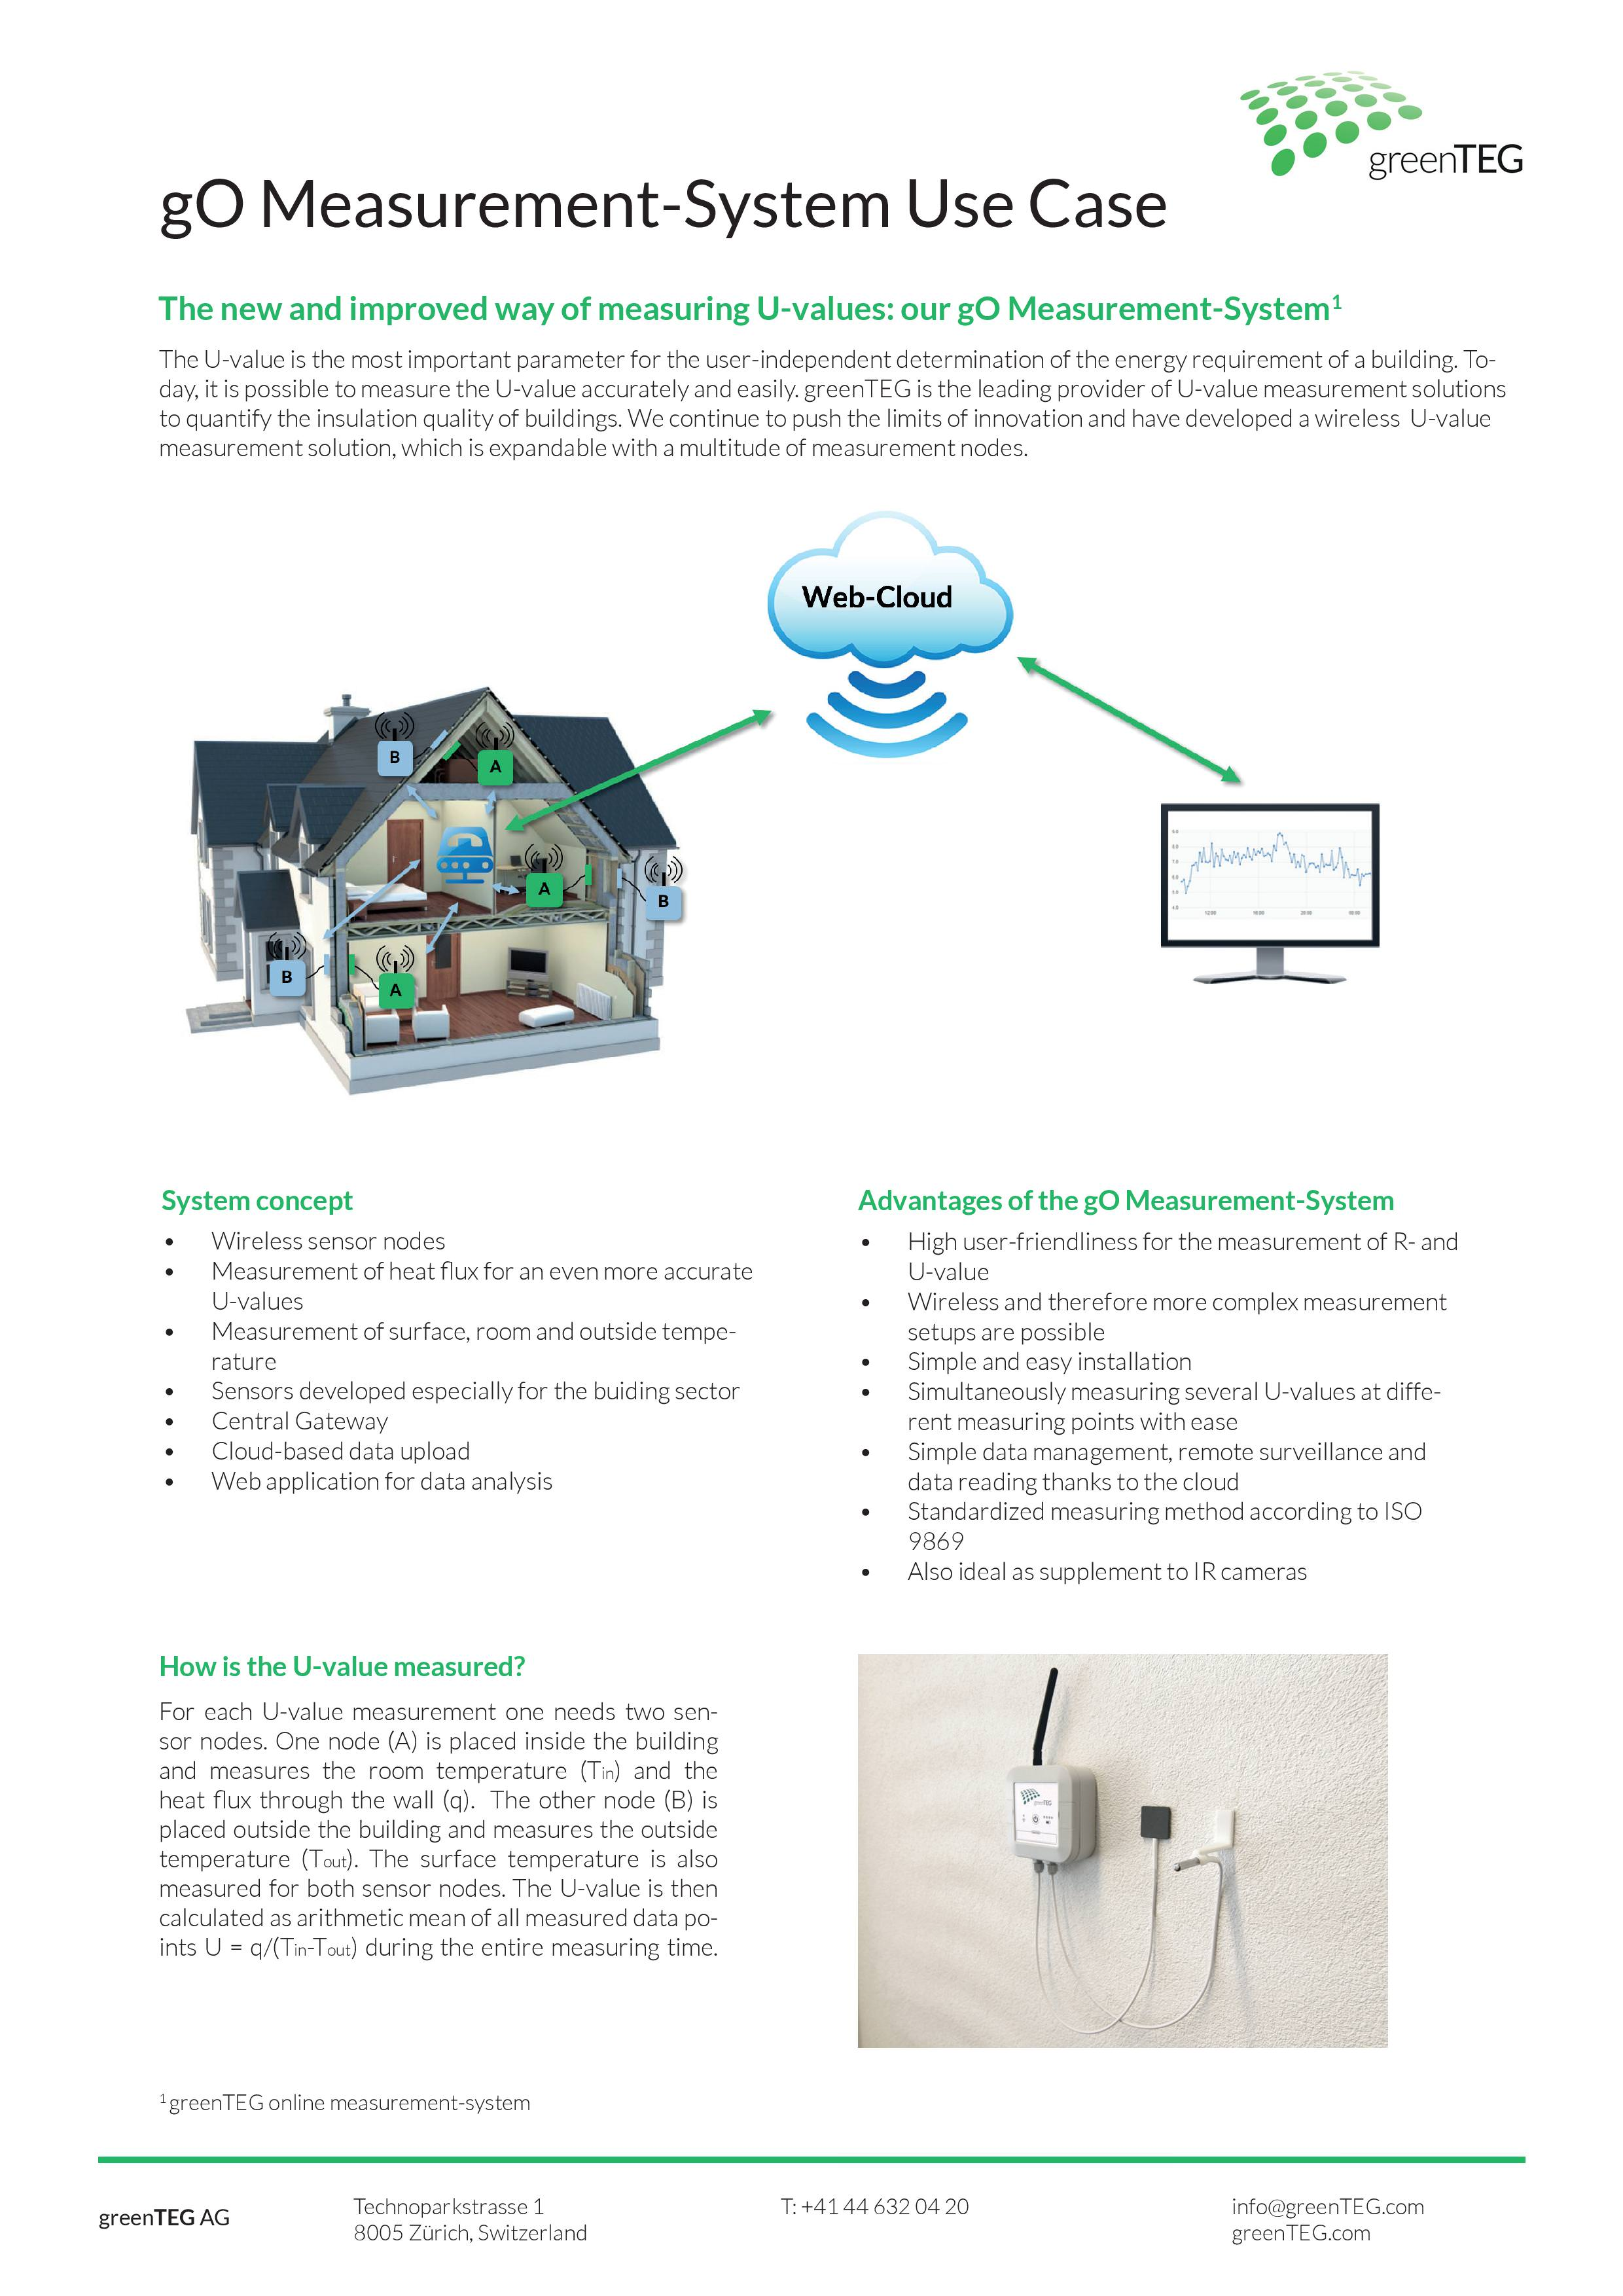 Gallery gO Measurement-System (gOMS) 3